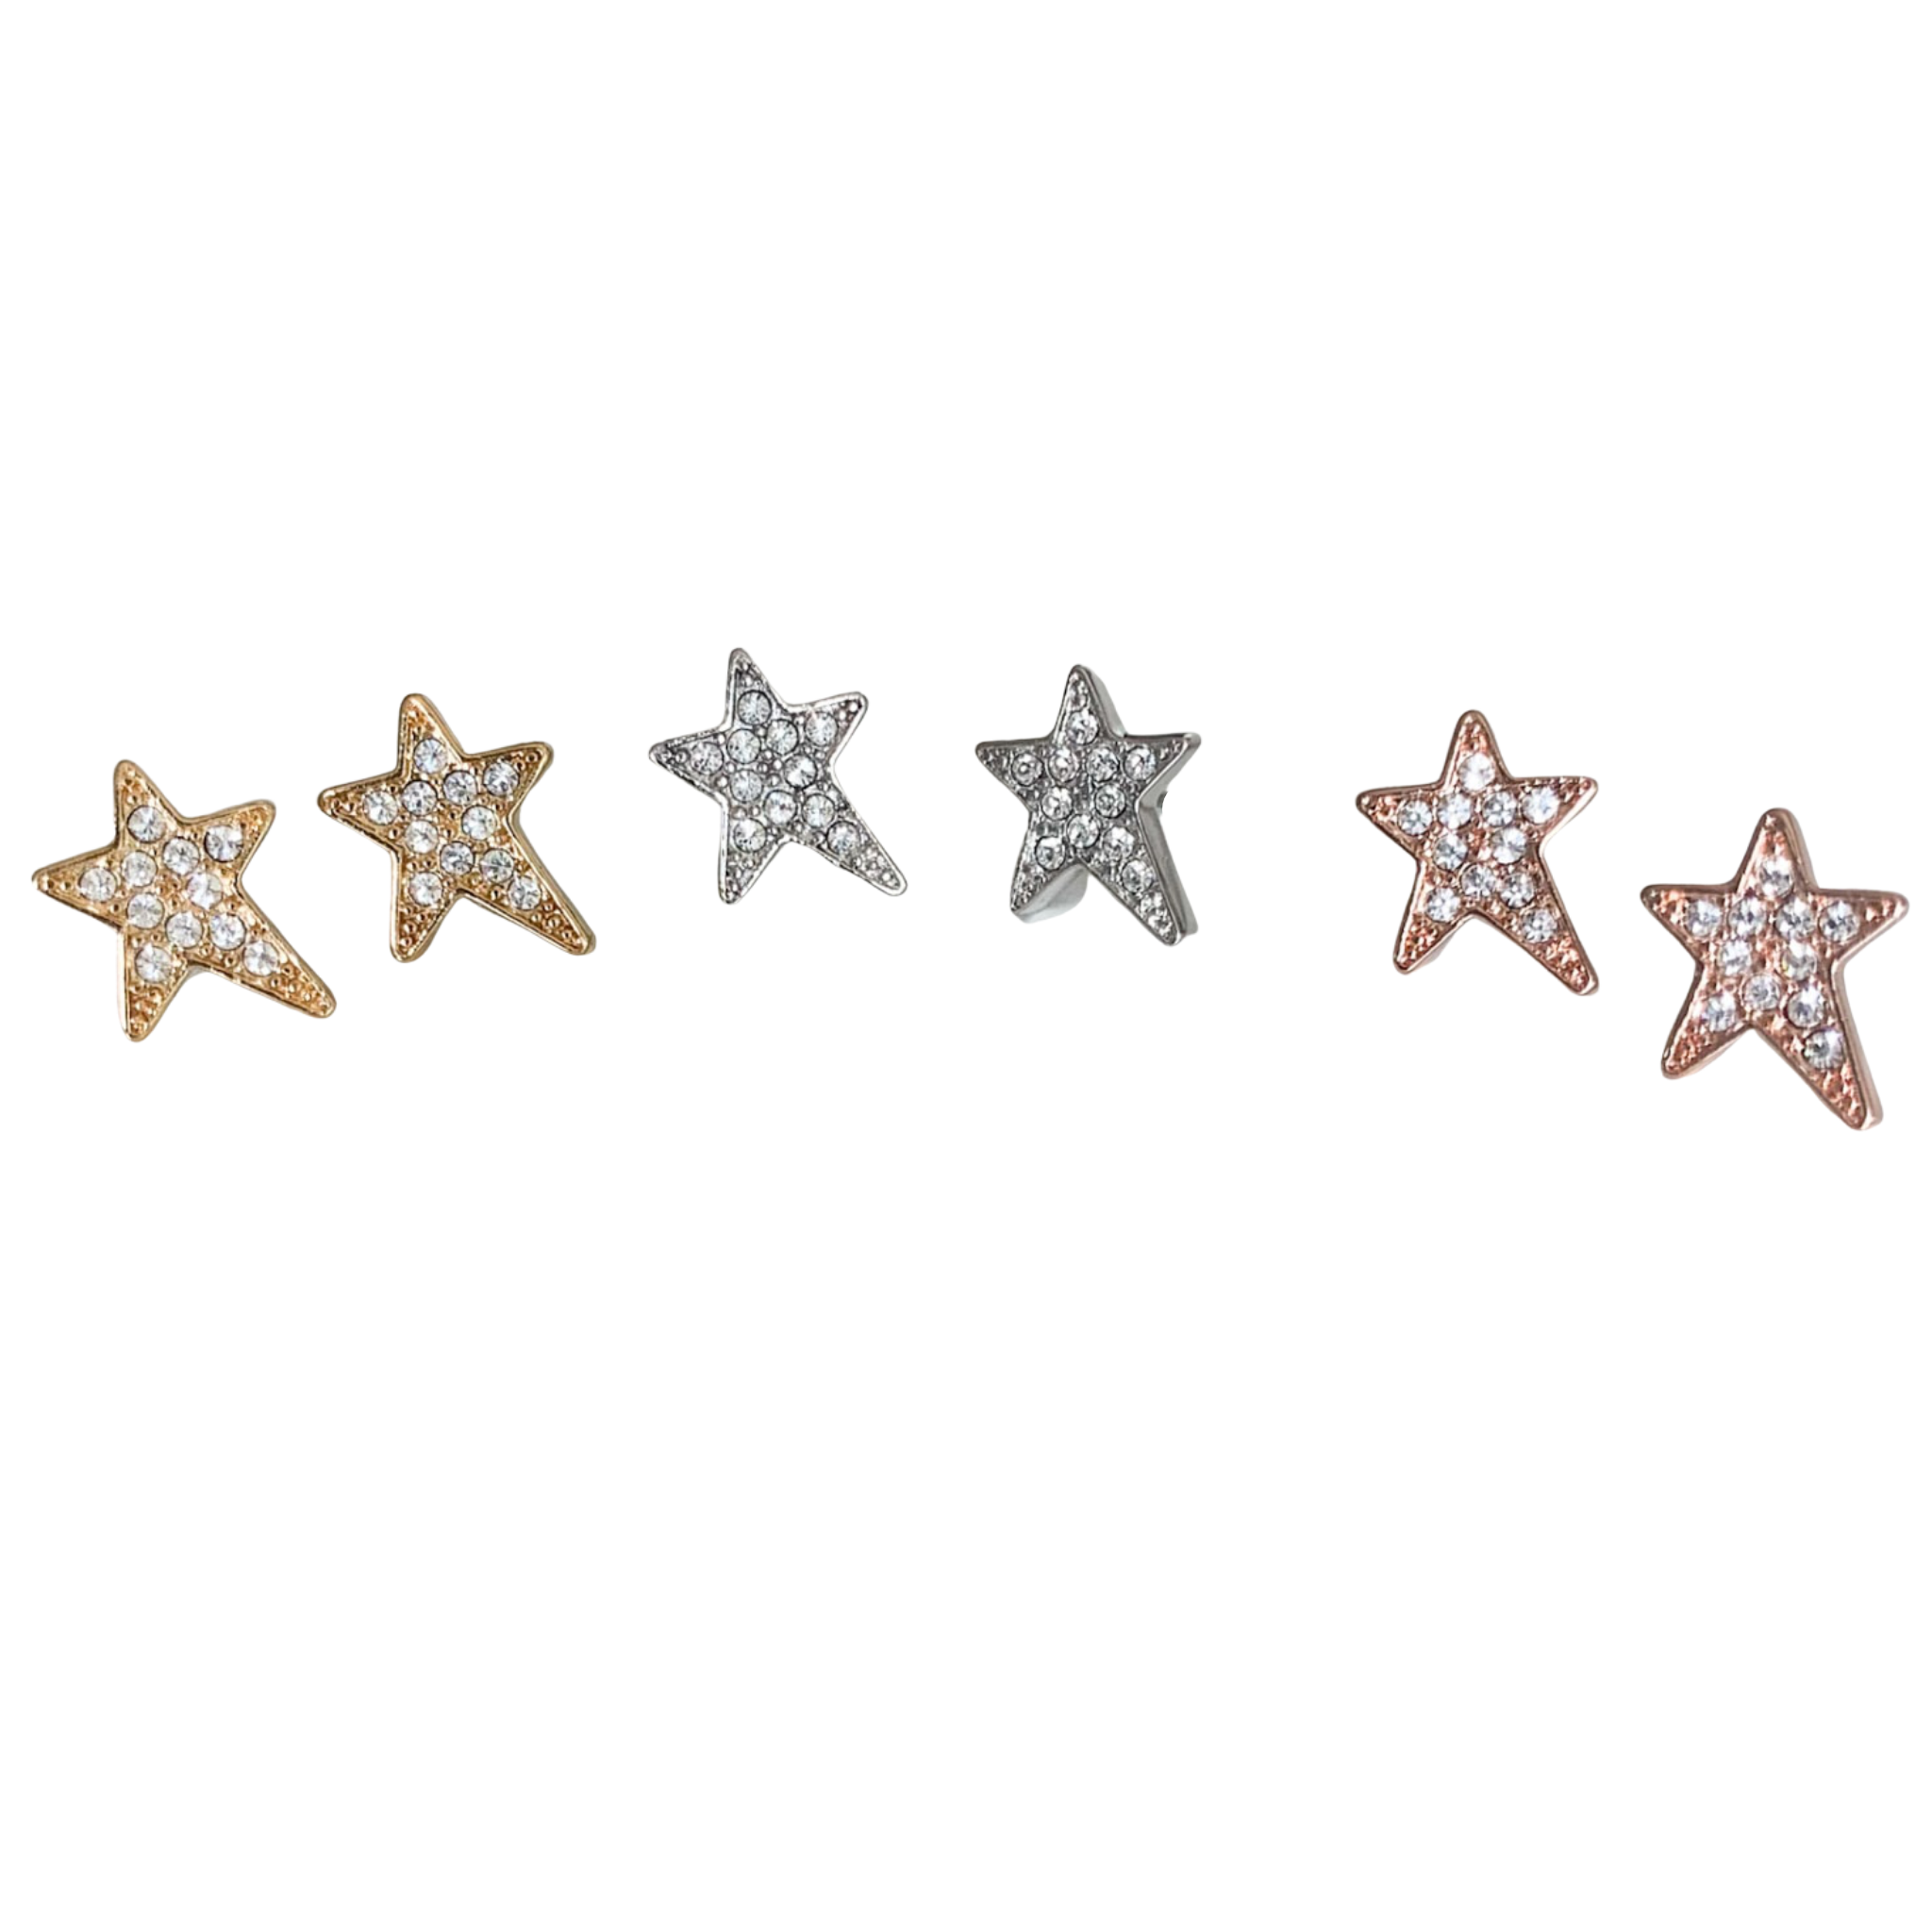 Magic Magnet Shana Large Clear Crystal Star Clip Stud Earrings (Gold, Silver and Rose Gold)